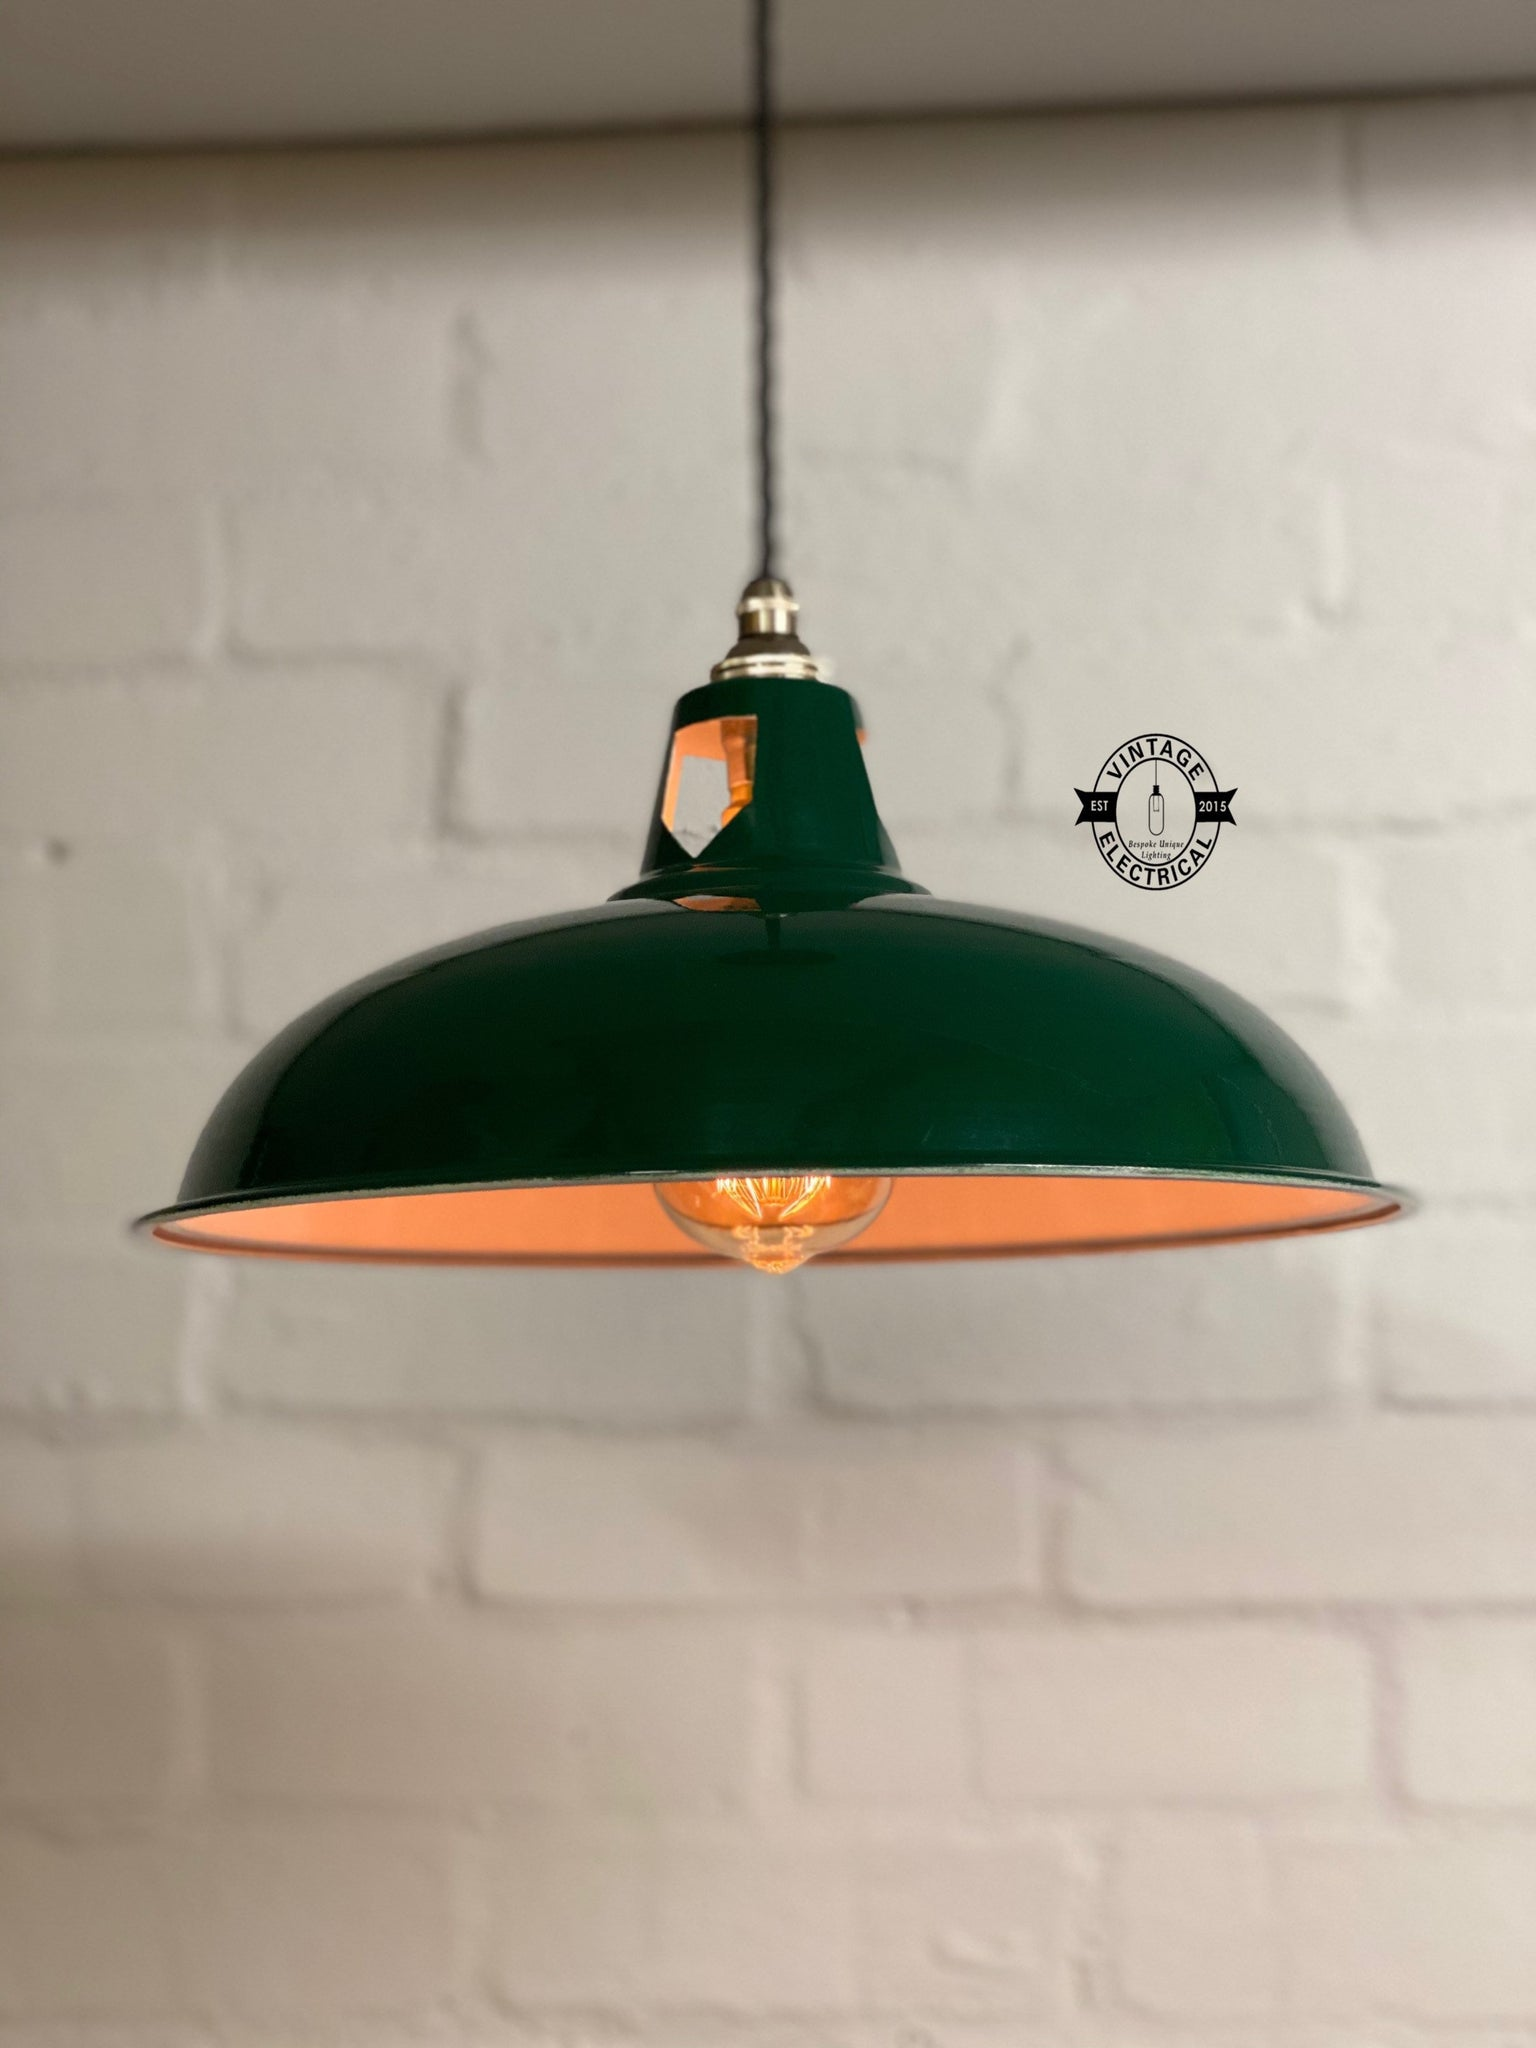 Sedgeford Coolicon ~ Racing Green Solid Industrial Shade Pendant Set Light | Ceiling Dining Room | Kitchen Table | Vintage Thorlux Style